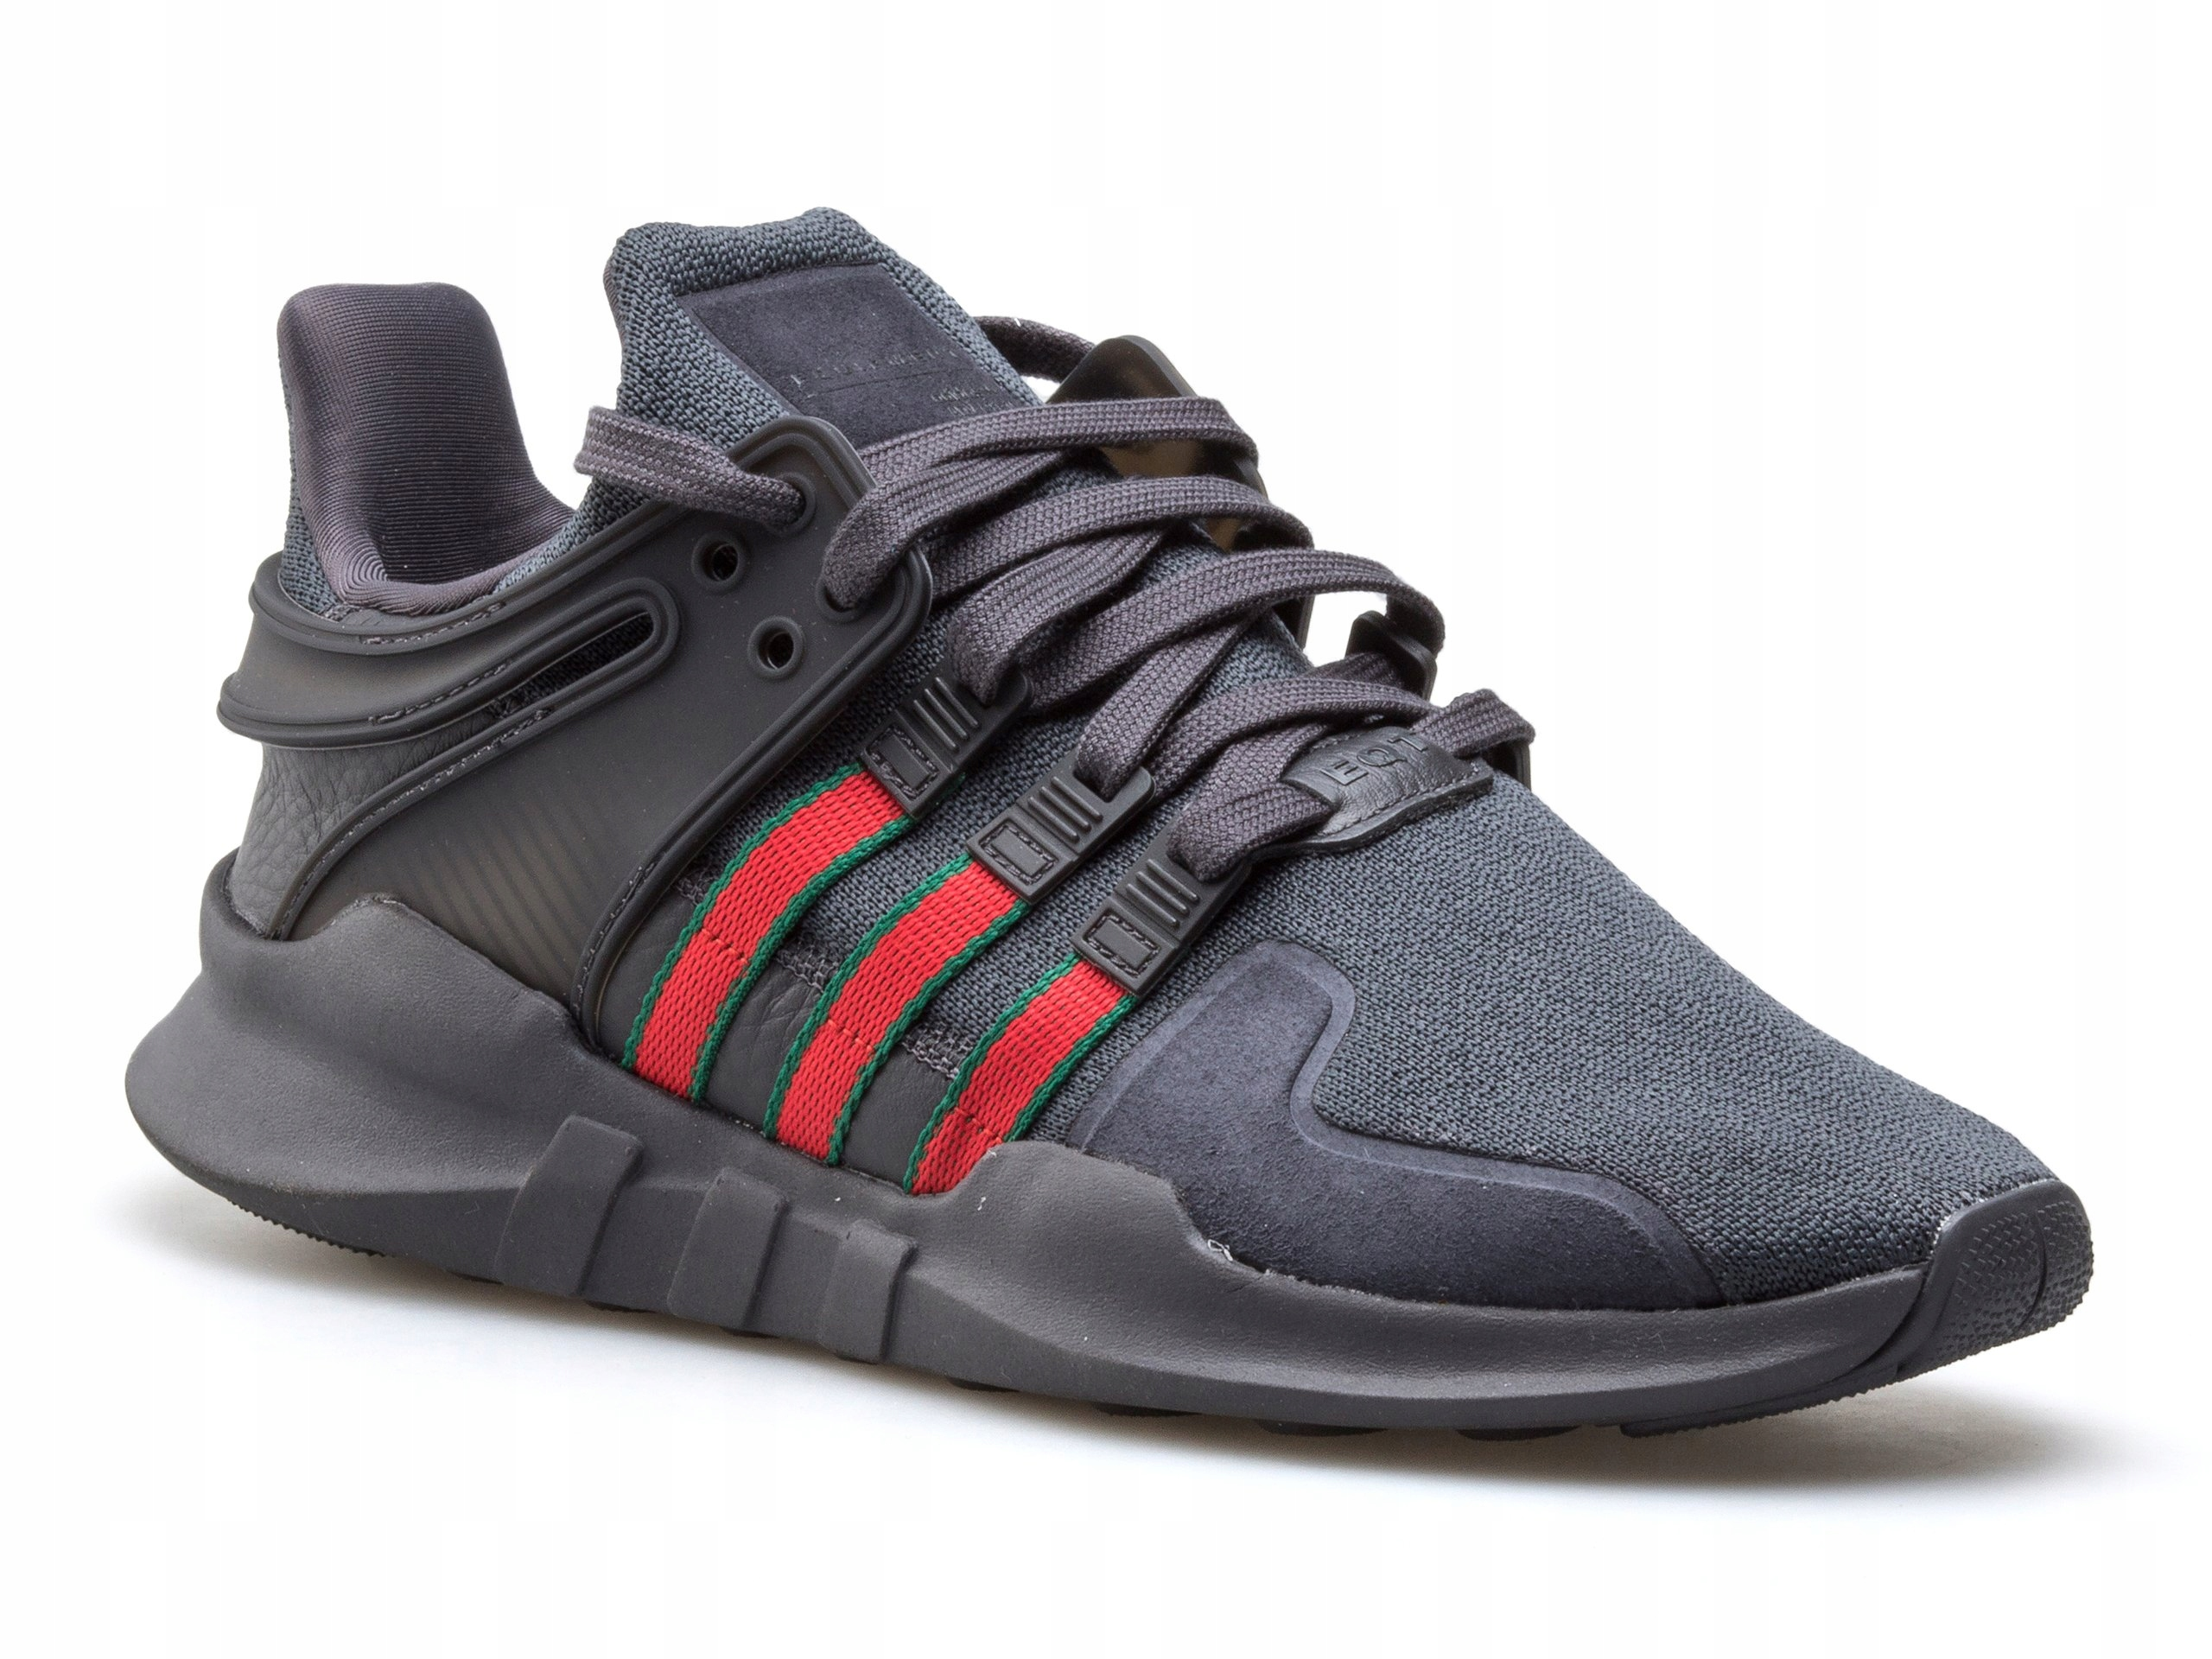 sneakers for cheap 8b855 35ccd Buty męskie adidas EQT SUPPORT BB6777 r. 41 13